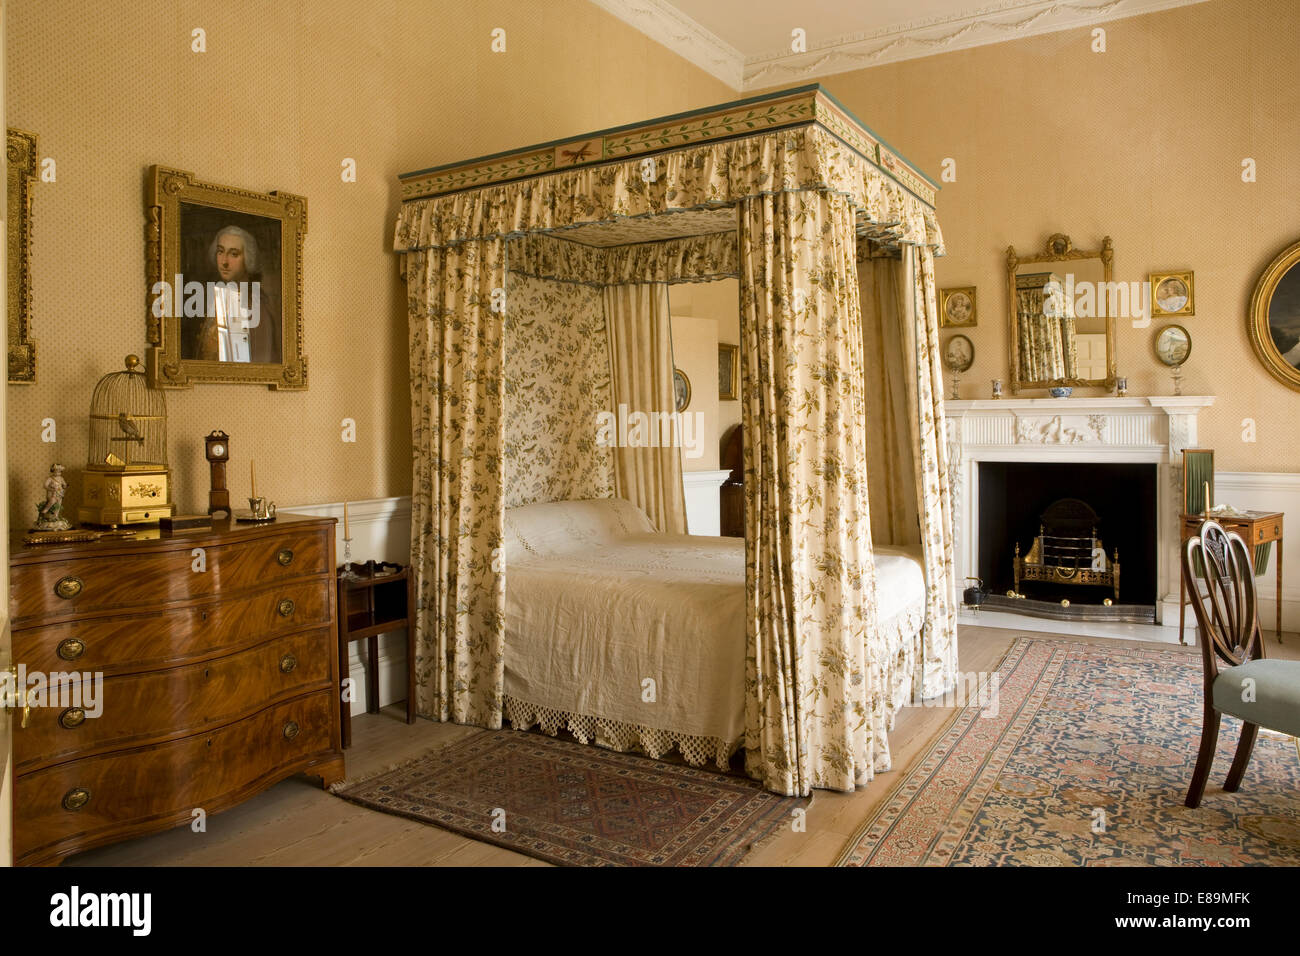 Floral drapes and canopy on four poster bed in country house bedroom - Stock Image